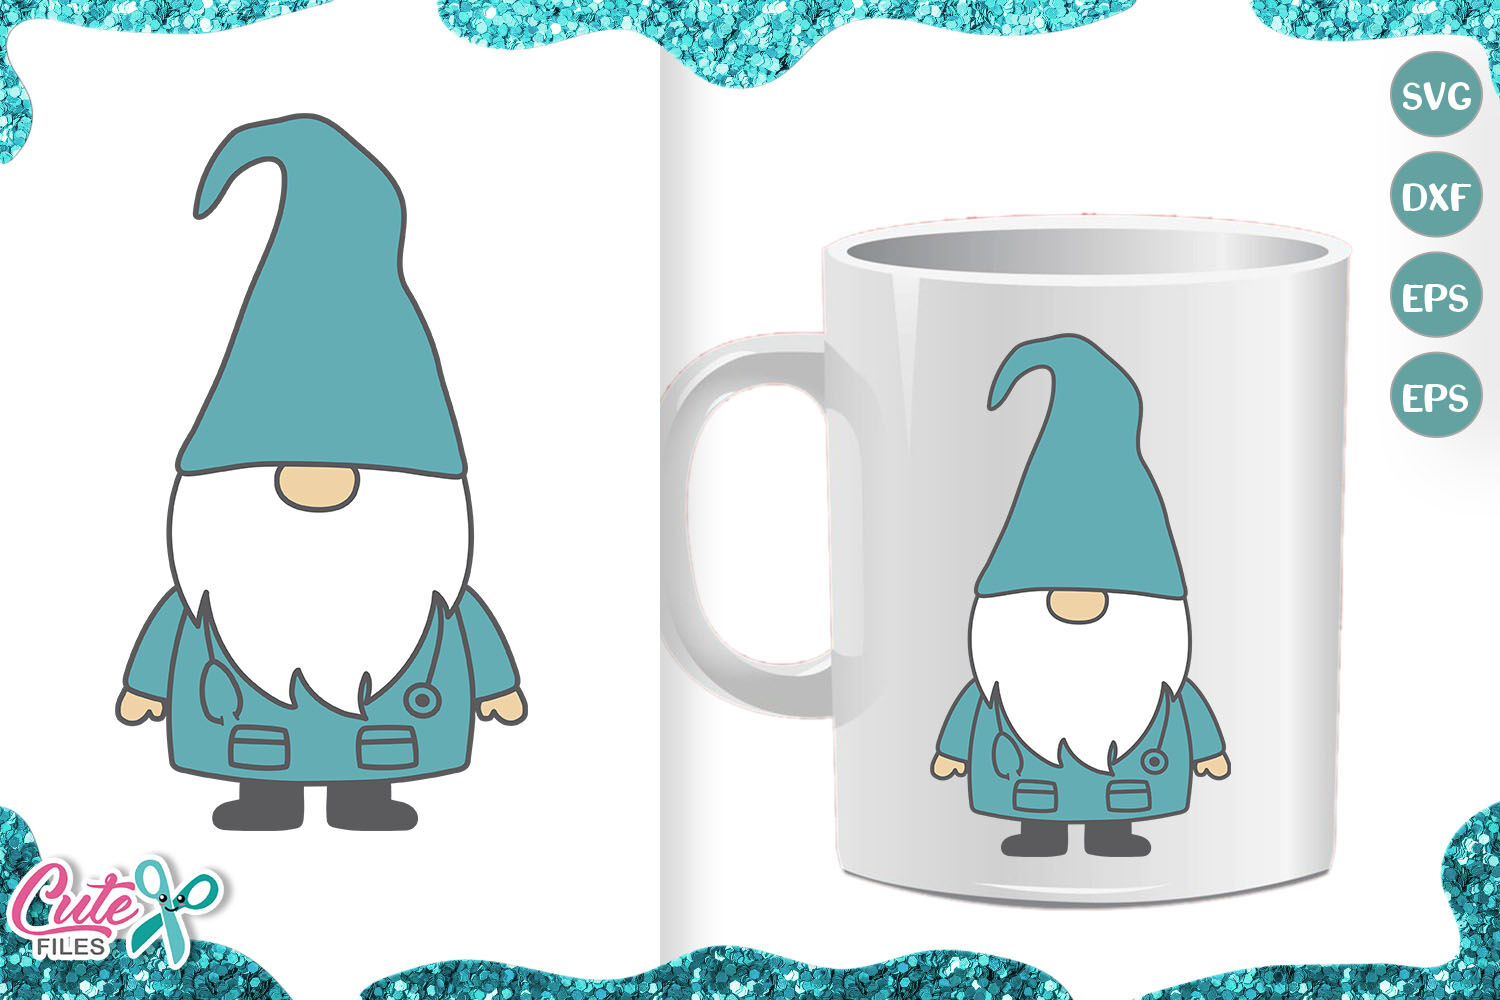 Nurse Gnome Medical Gnome Svg Cut File For Crafter By Cute Files